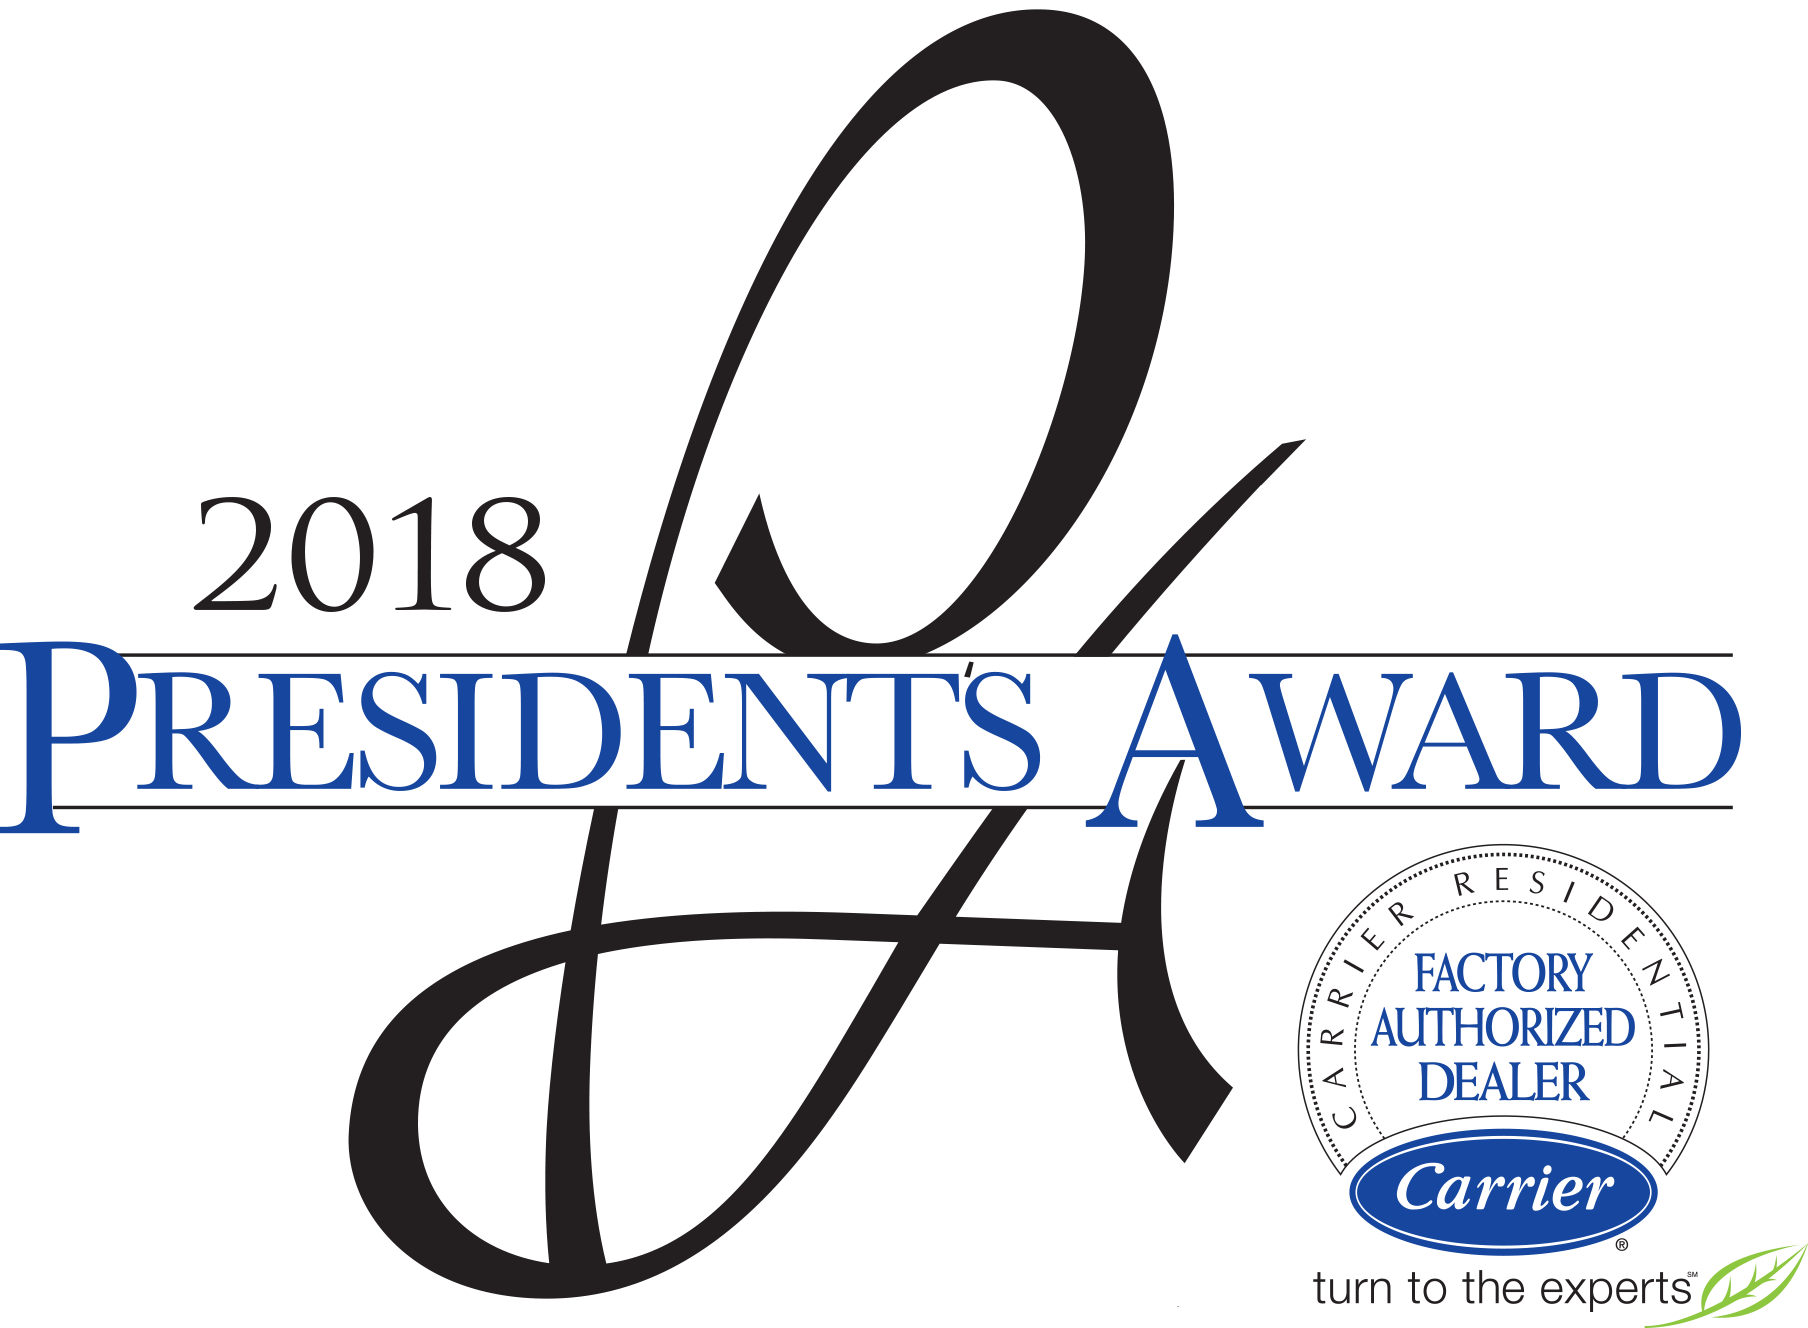 Carrier 2018 President's Award